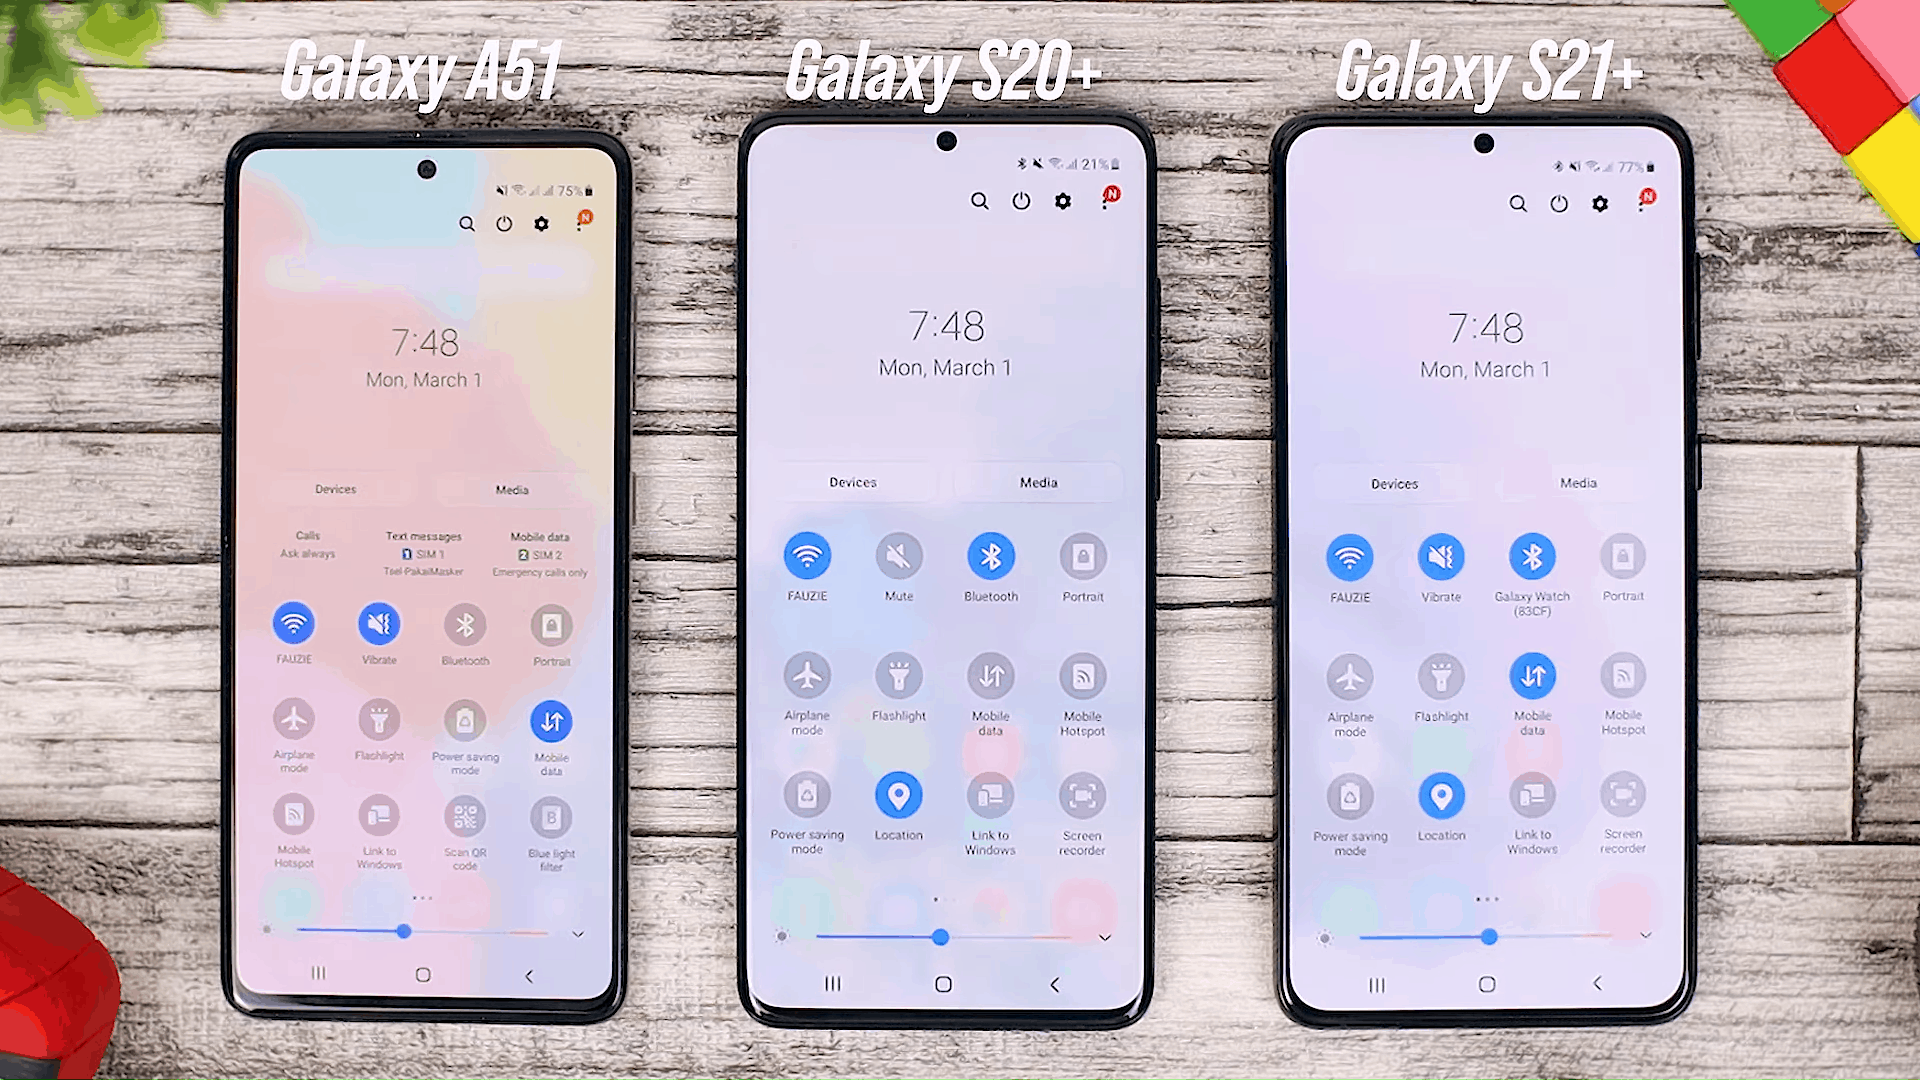 Notification Panel - Fitur One UI 3.0 di Galaxy A51 dan Perbandingannya dengan Galaxy S20+ dan One UI 3.1 di Galaxy S21+